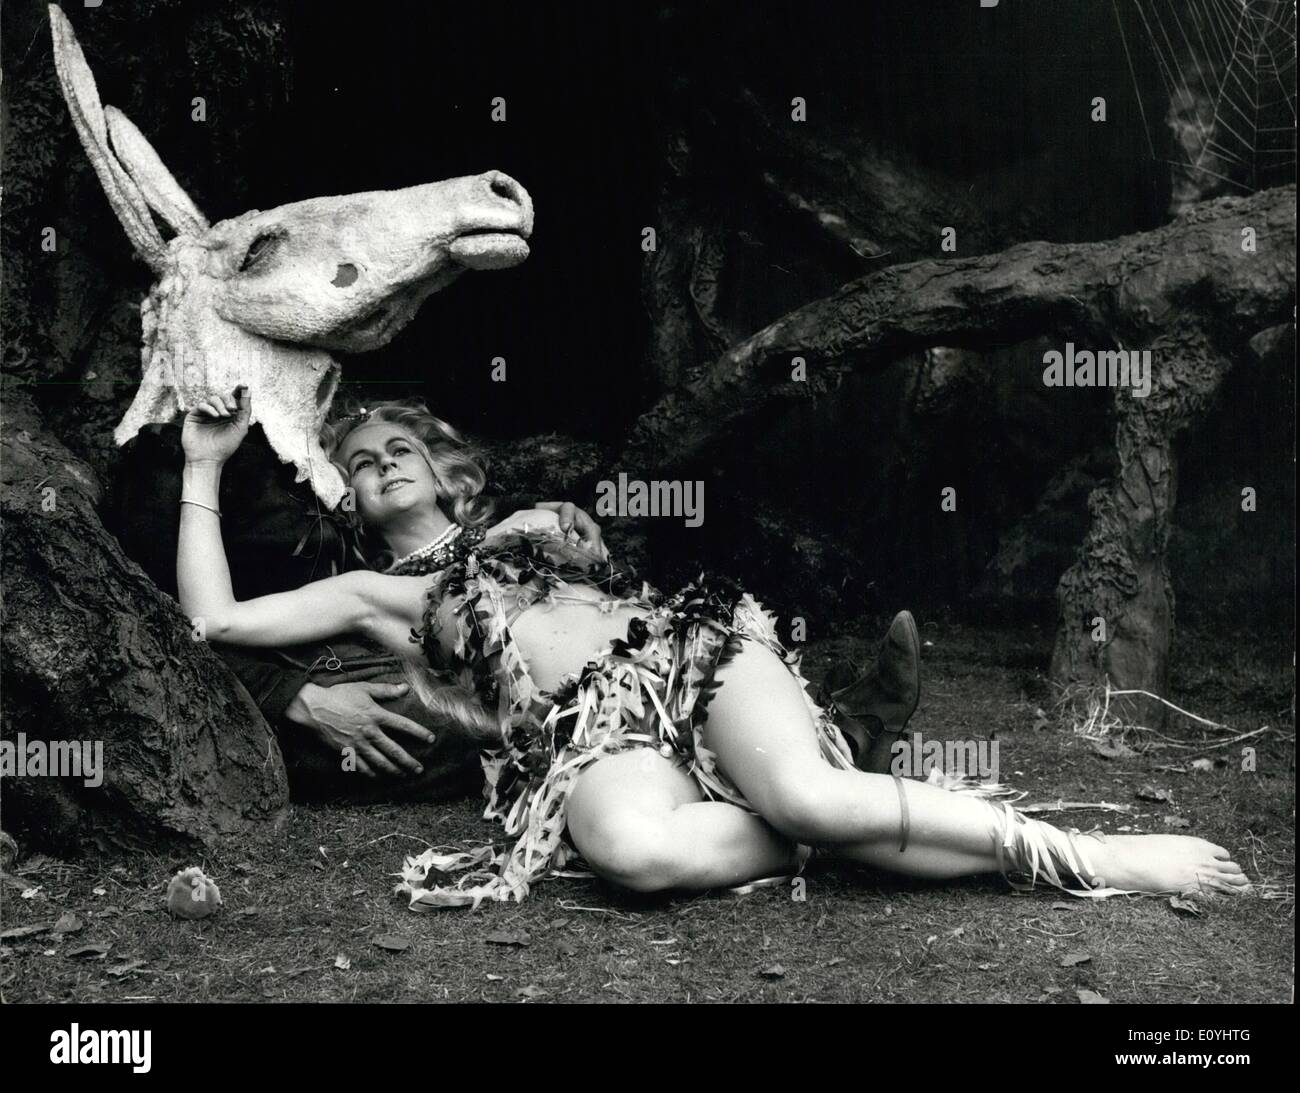 Jun. 06, 1970 - Open Air theatre rehearsals for ''A Midsummer Night's Iream''. A rehearsal was held this afternooon at the Regent's Park Open air theatre , for ''A Midsummer Night's Conville for the New Shakespeare Company. Photo shows Irena mayeska, who plays Titania, and Trevor Peacock who plays Bottom - seen during today's rehearsal. - Stock Image